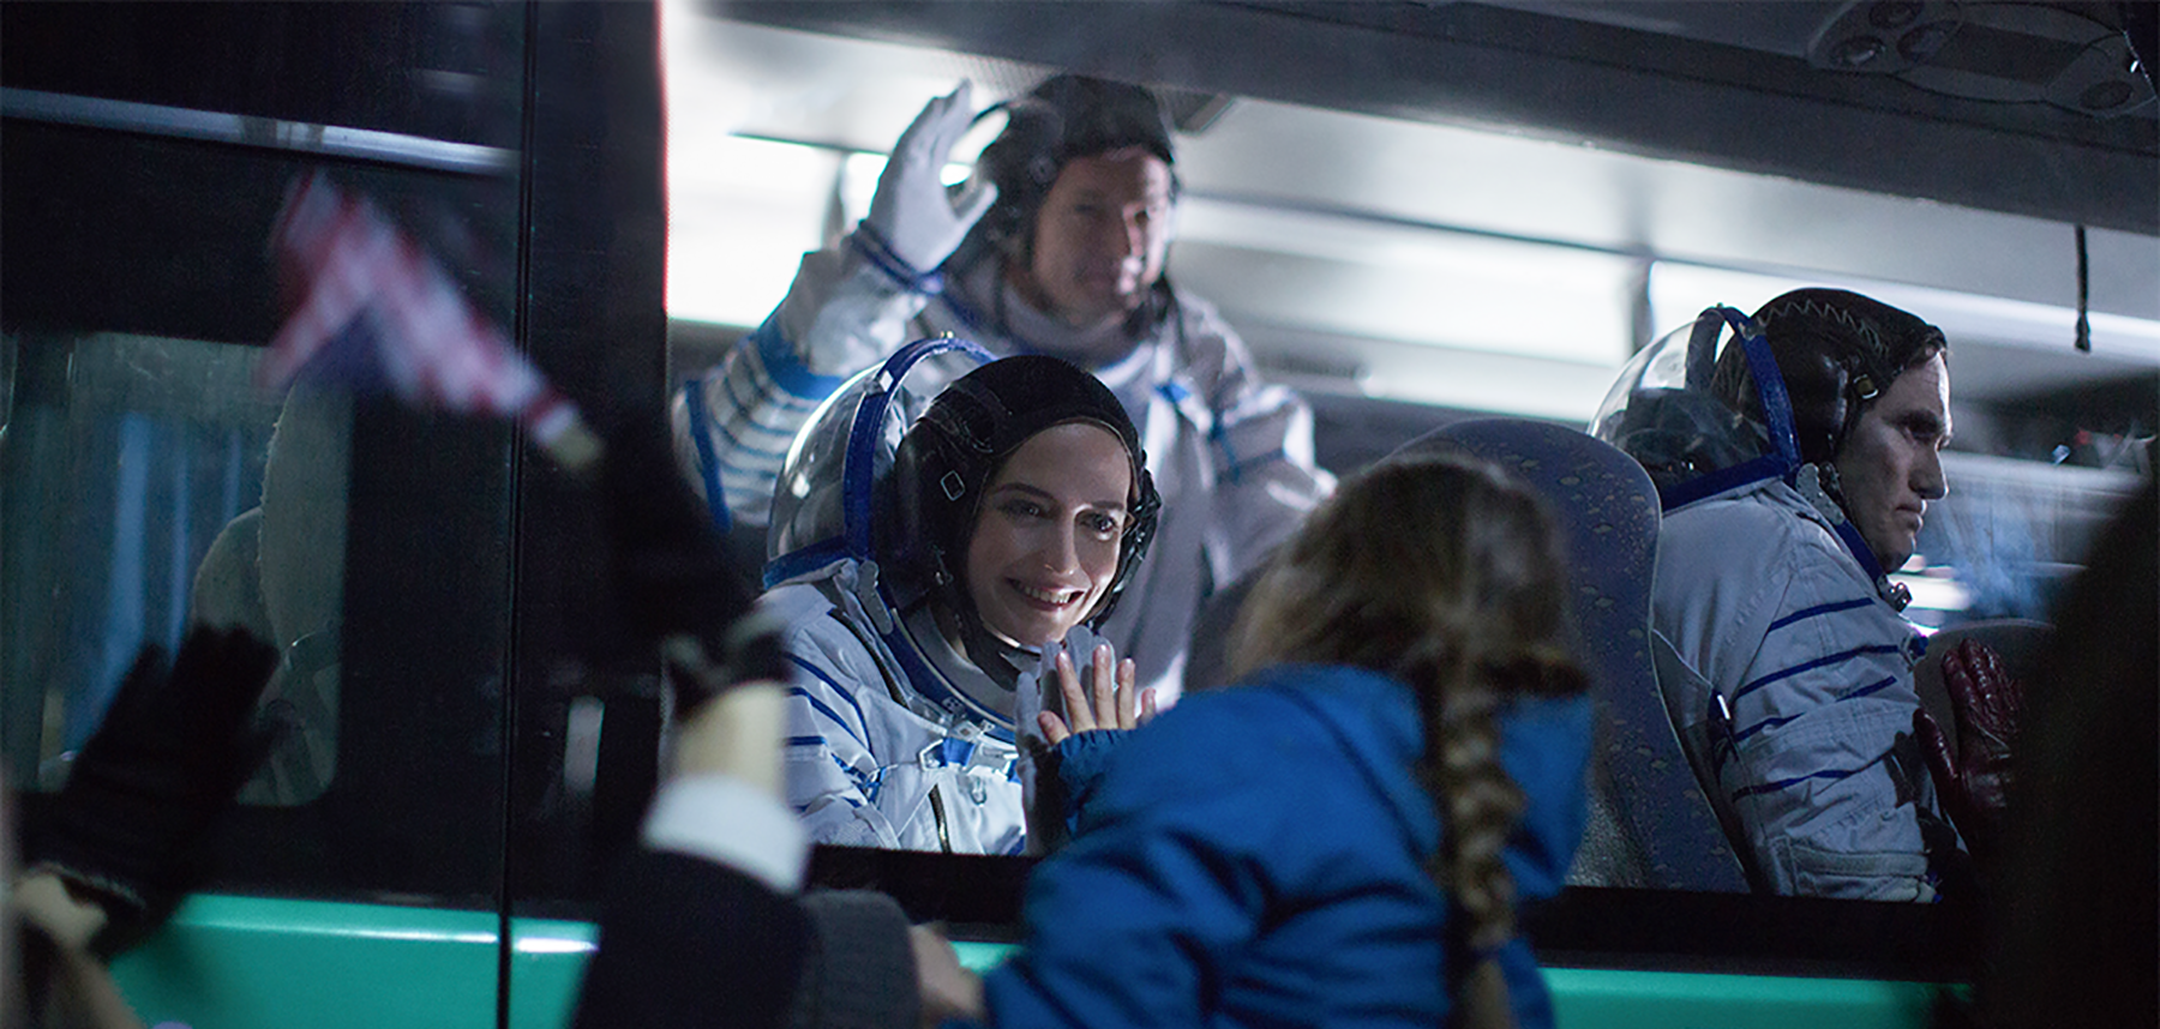 Eva Green as Sarah in her spacesuit in a still from 'Proxima' (2019)